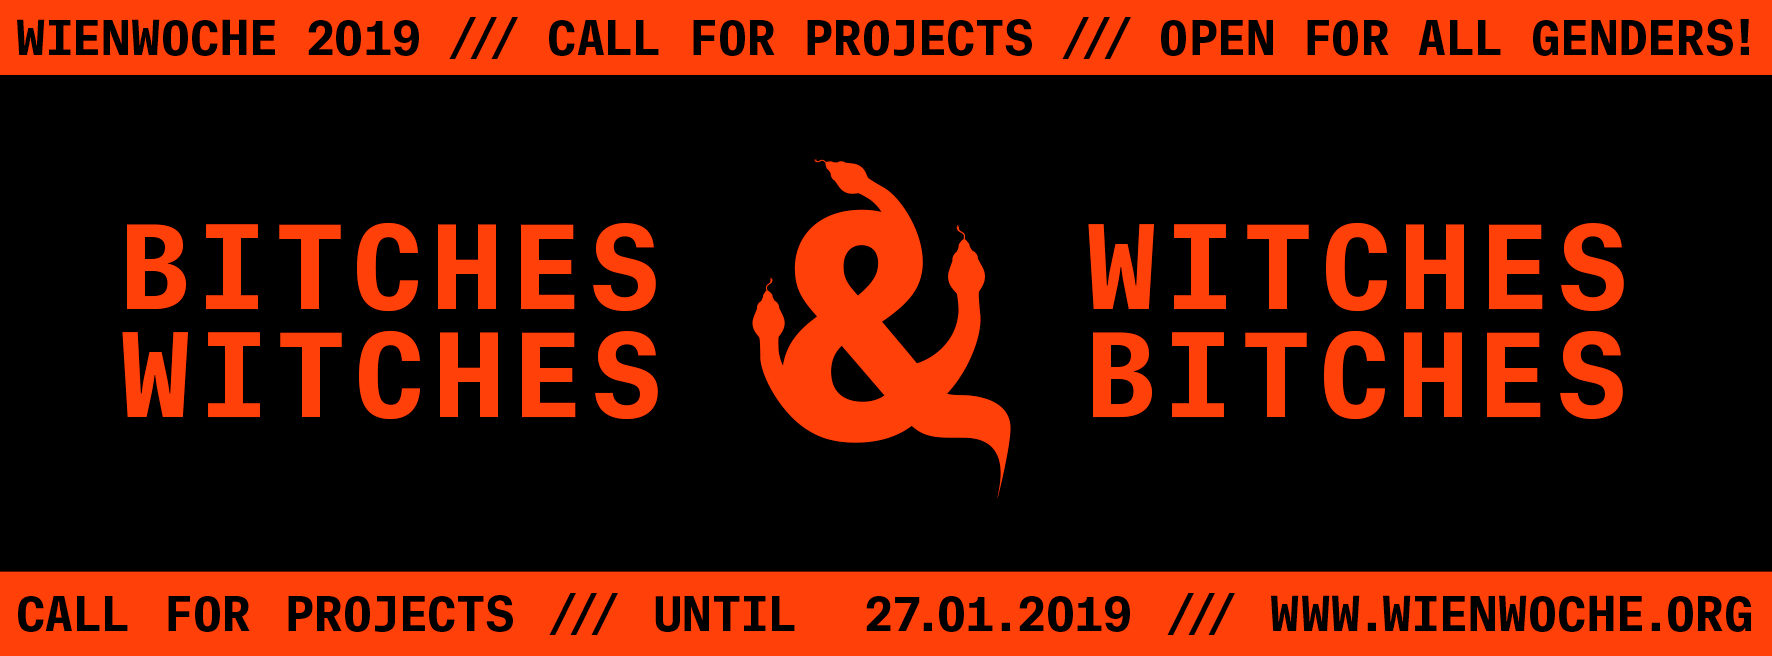 WIENWOCHE 2019 Open Call Banner (C) Esther Straganz